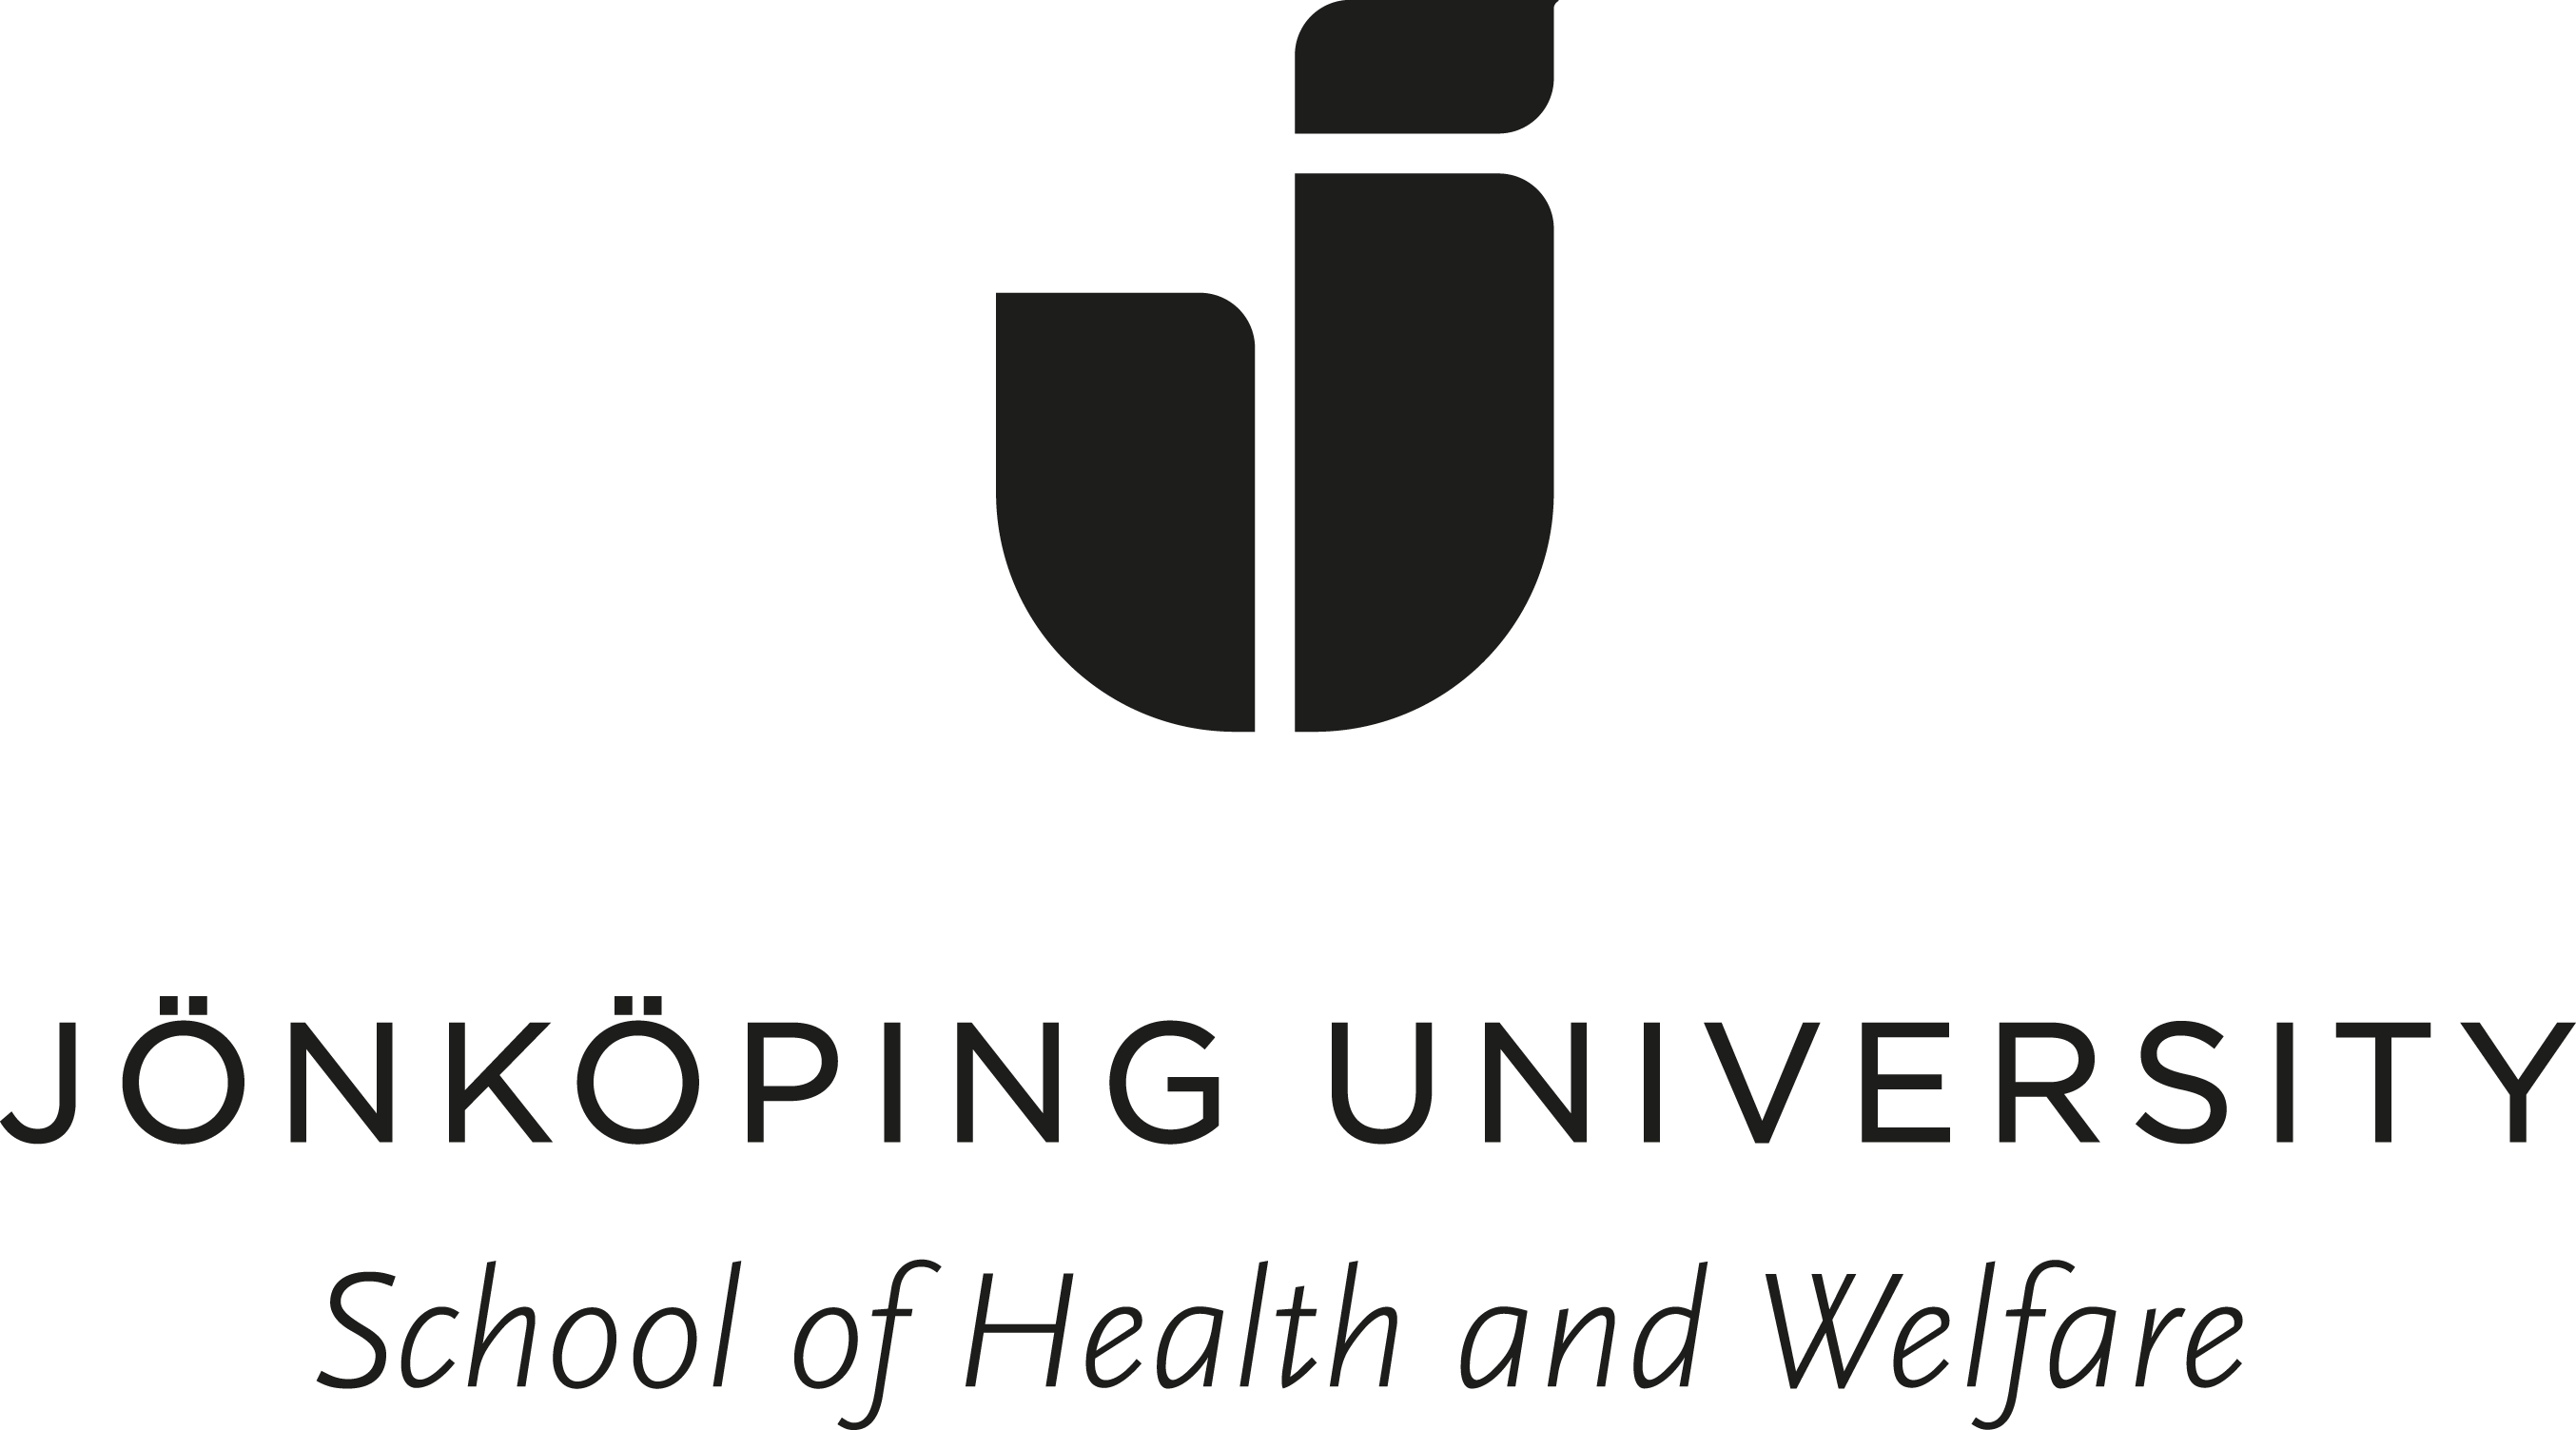 Jönköping University School of Health and Welfare